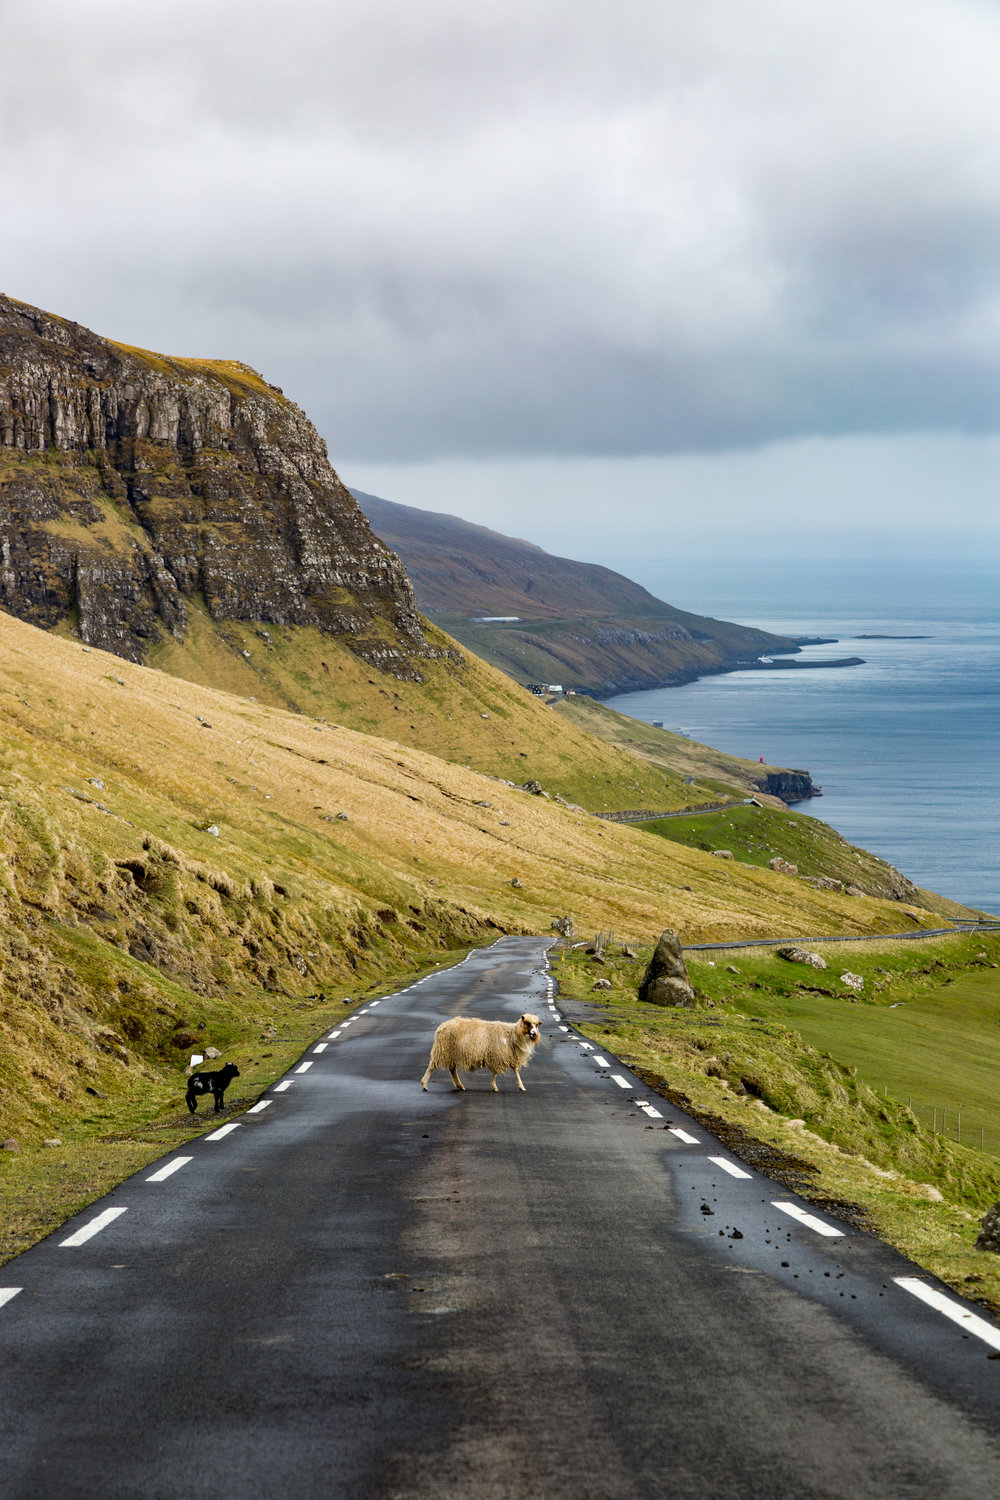 Sheep on the roads in the Faroe Islands last May.